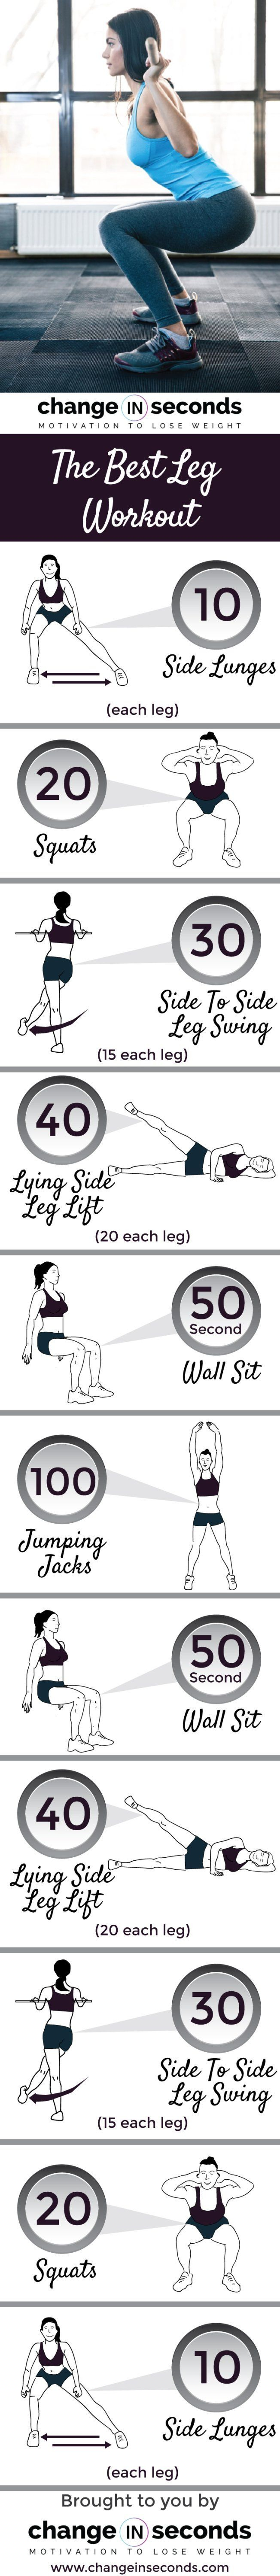 The Best Leg Workout